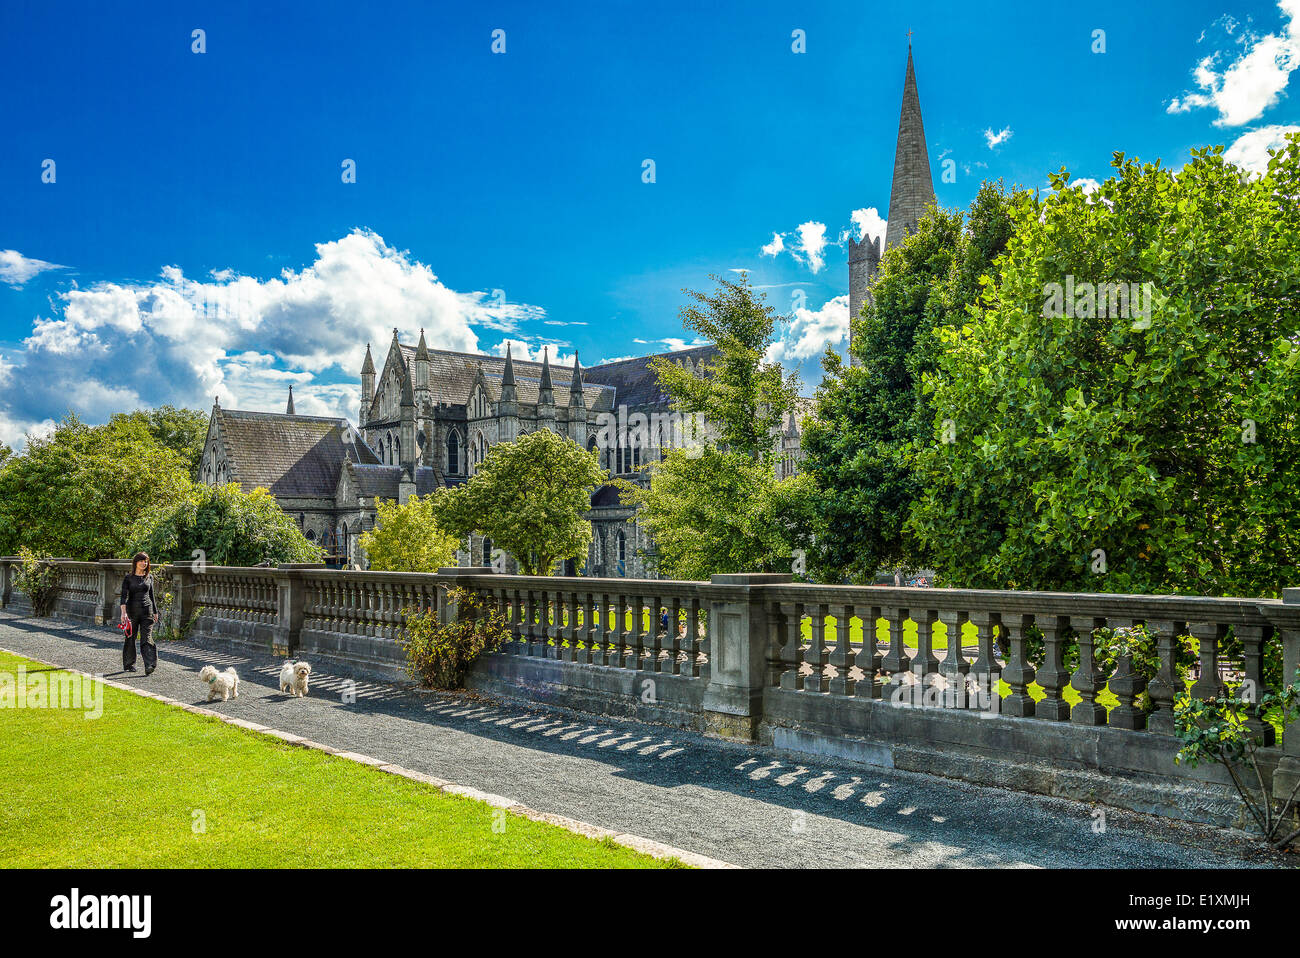 Ireland, Dublin, the St Patrik's gardens and cathedral - Stock Image